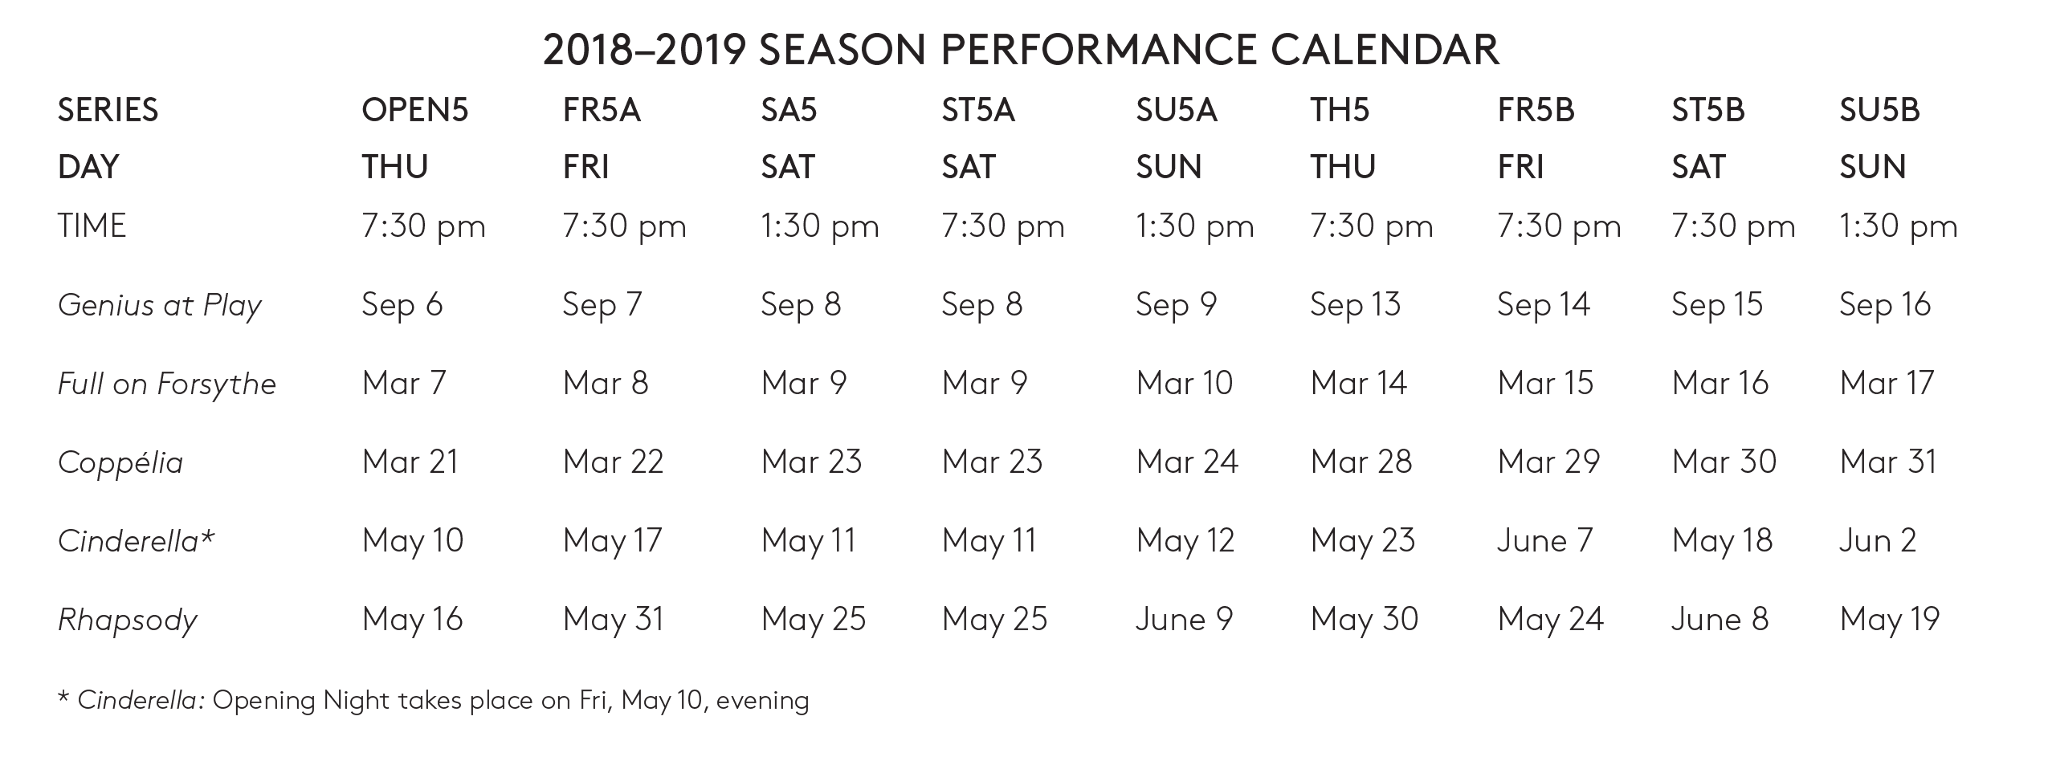 2018-2019_Subscriptions_Calendar.png